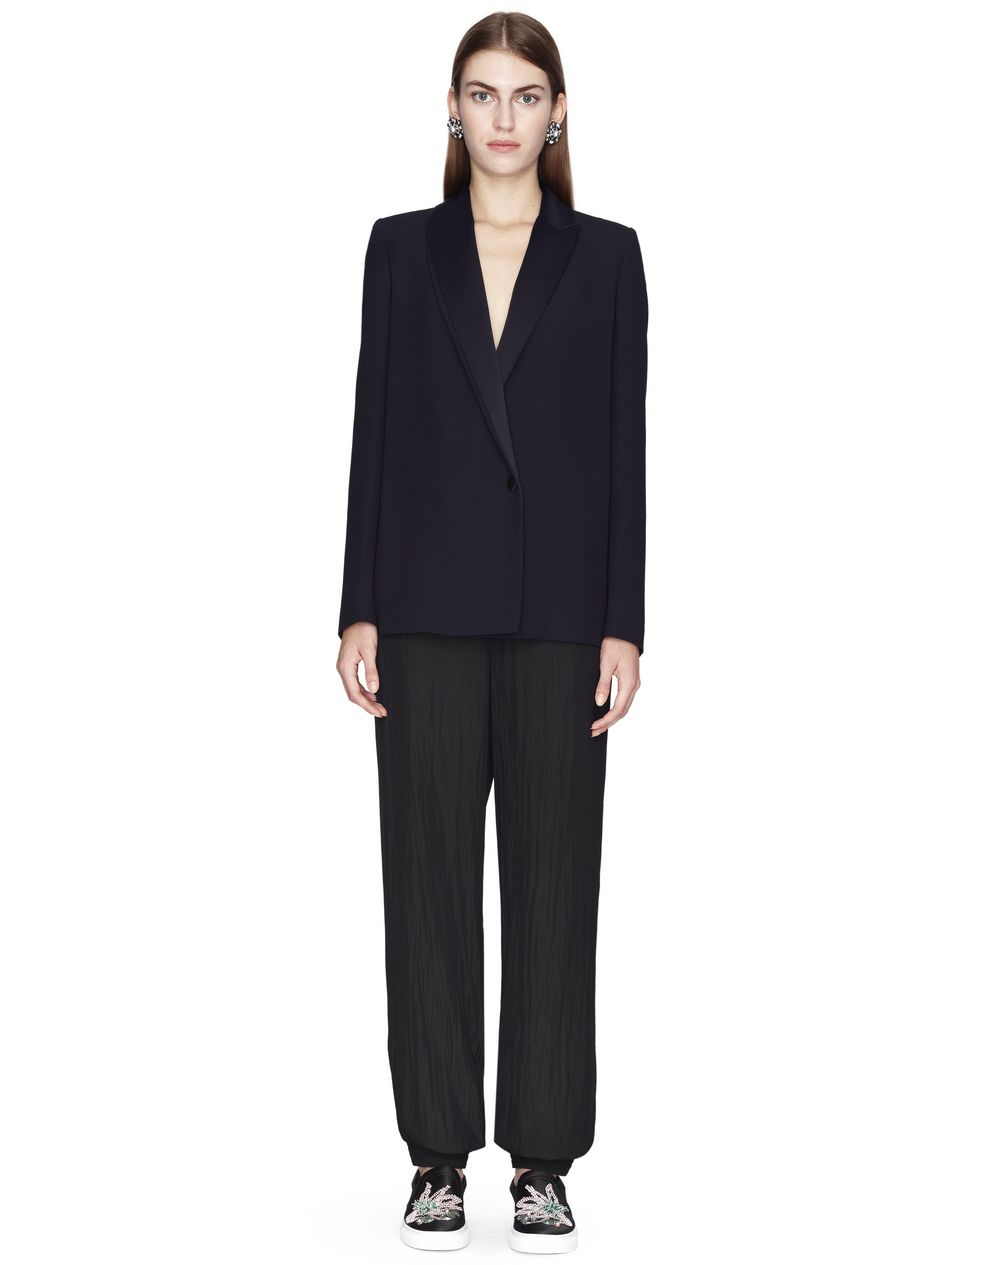 MIDNIGHT BLUE TAILORED JACKET - Lanvin